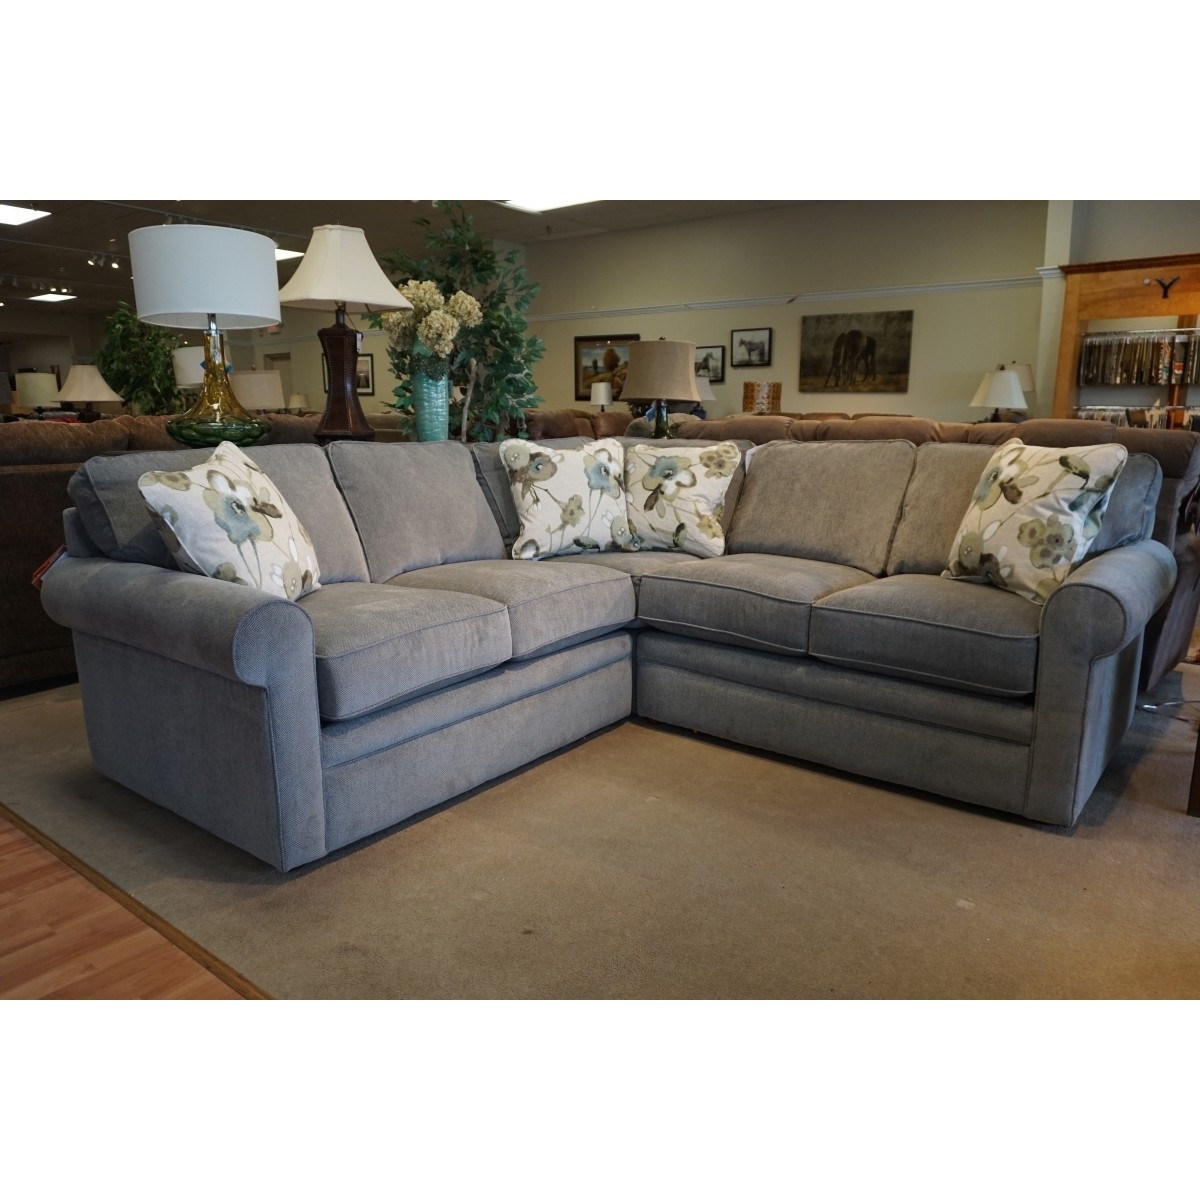 Z Boy Collins Sectional Regarding Newest La Z Boy Sectional Sofas (View 15 of 15)